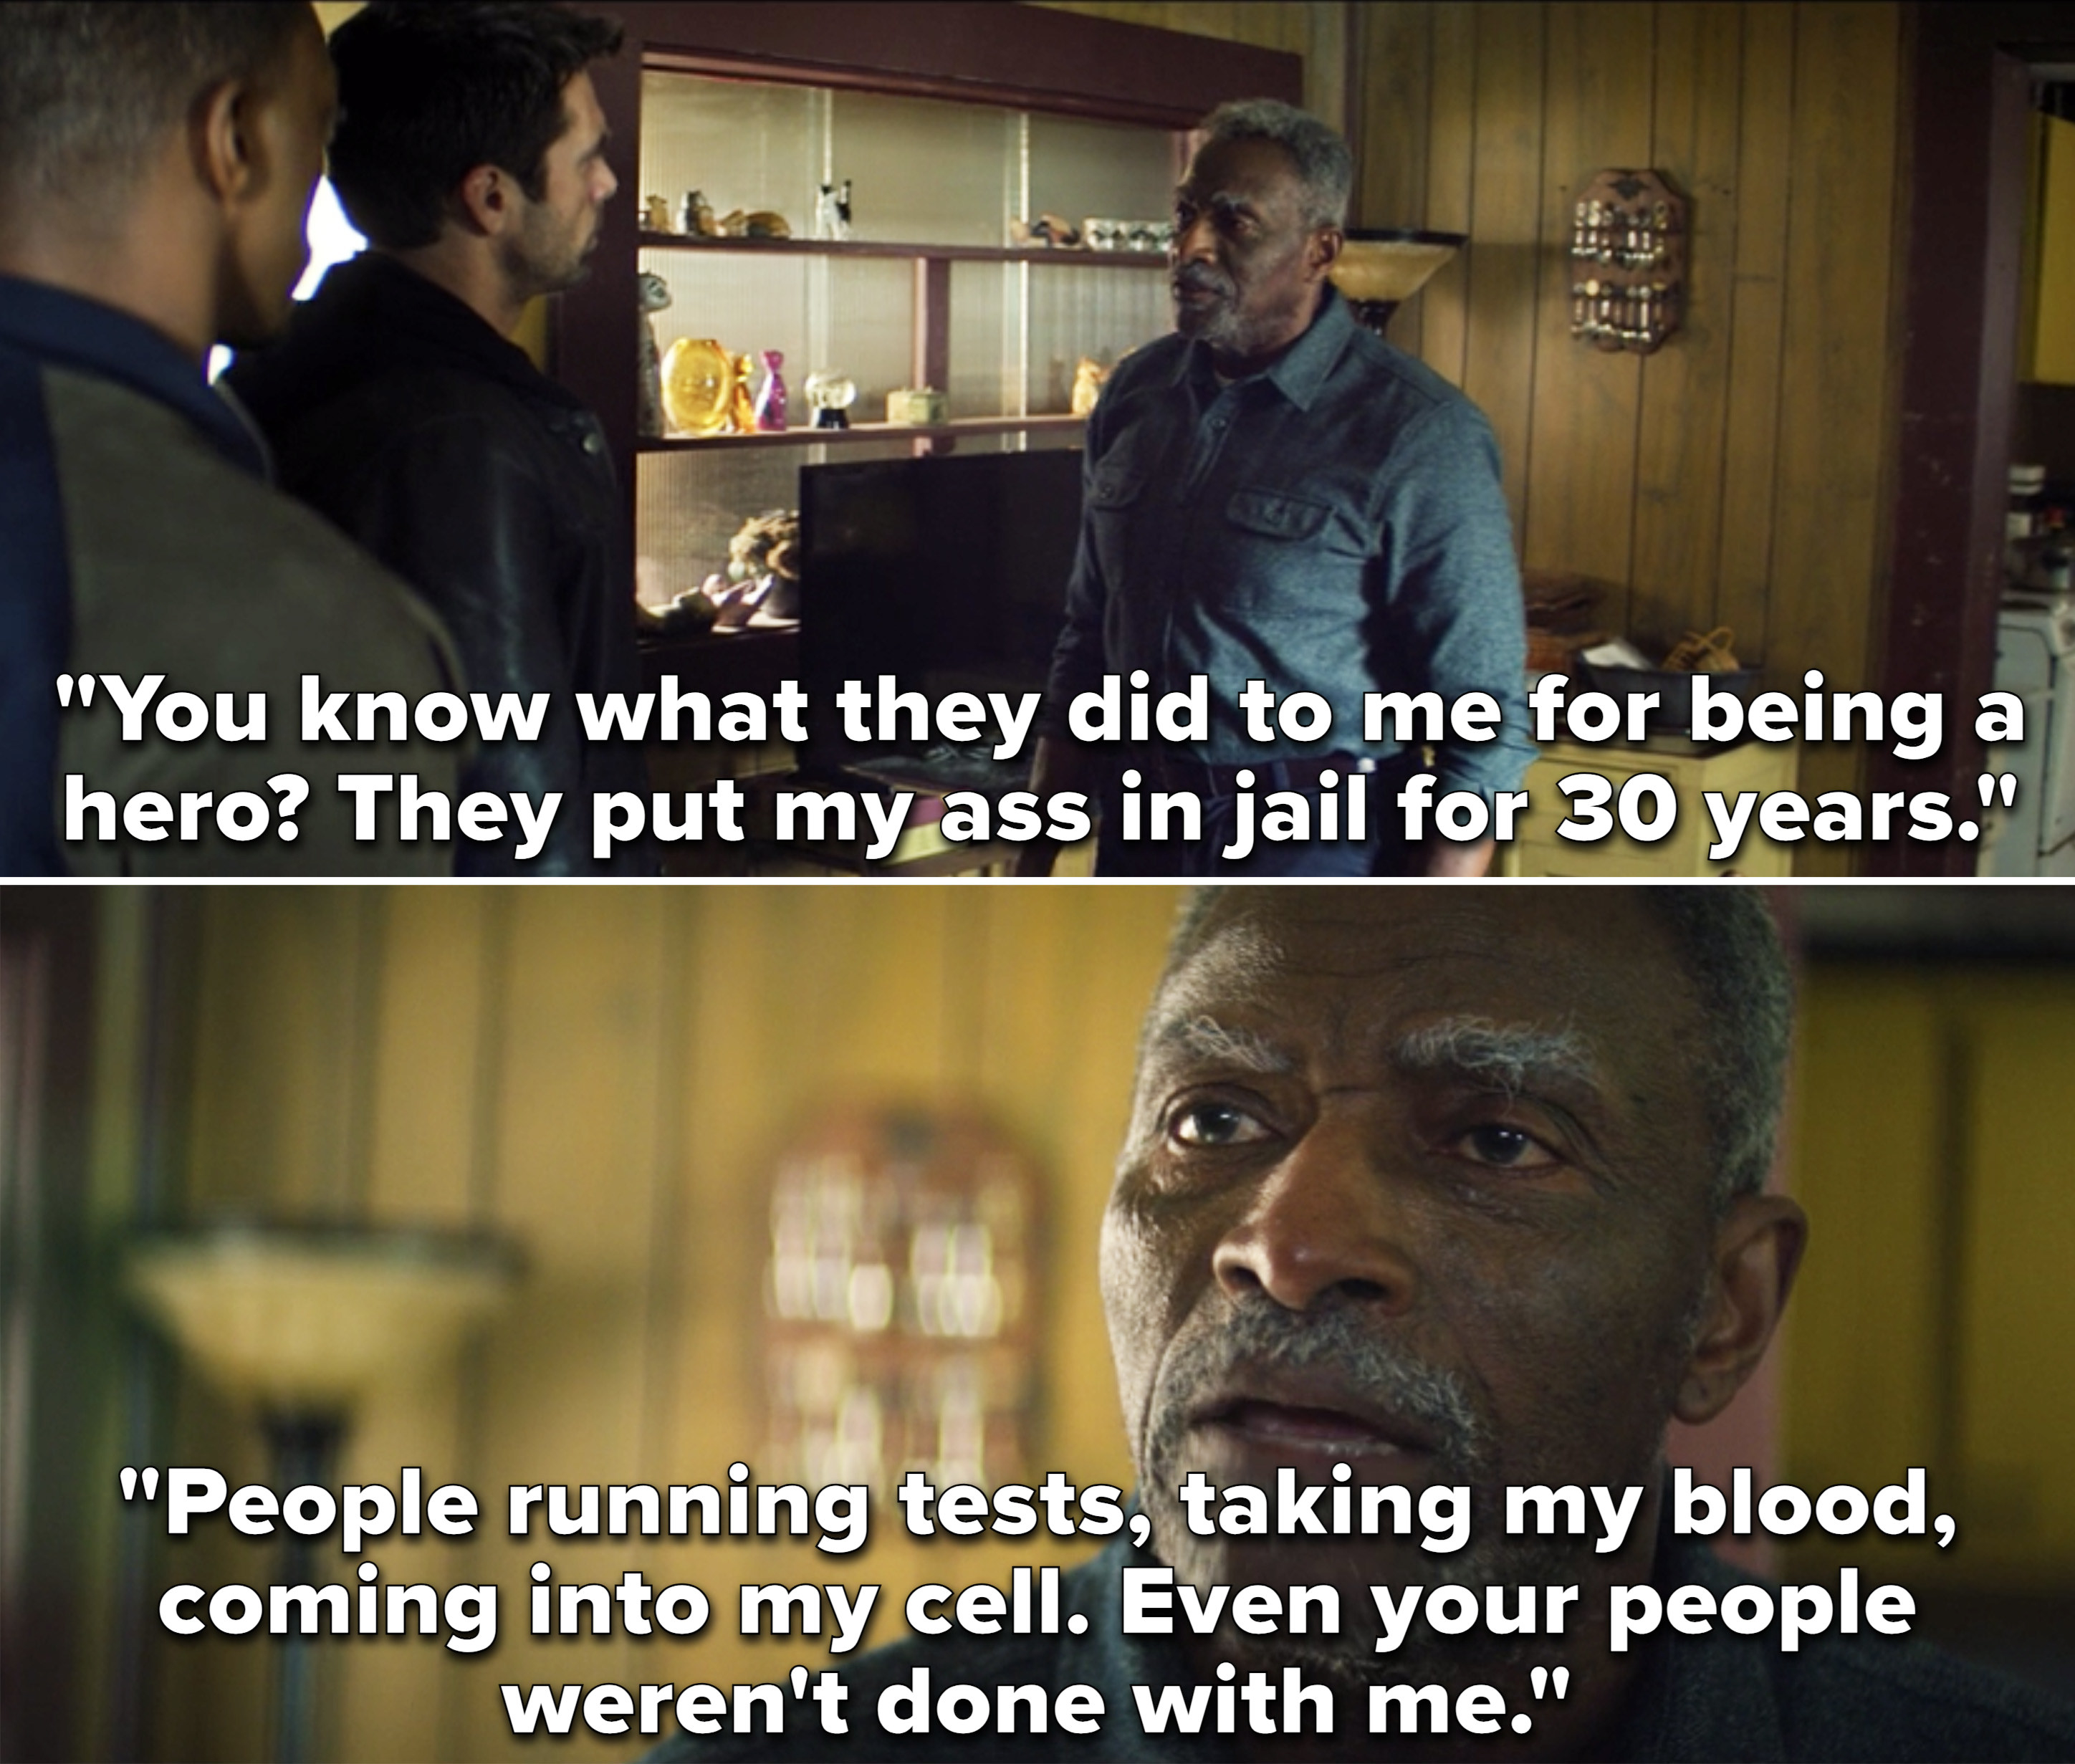 Isaiah saying that he was put in jail for 30 years and had tests run on him